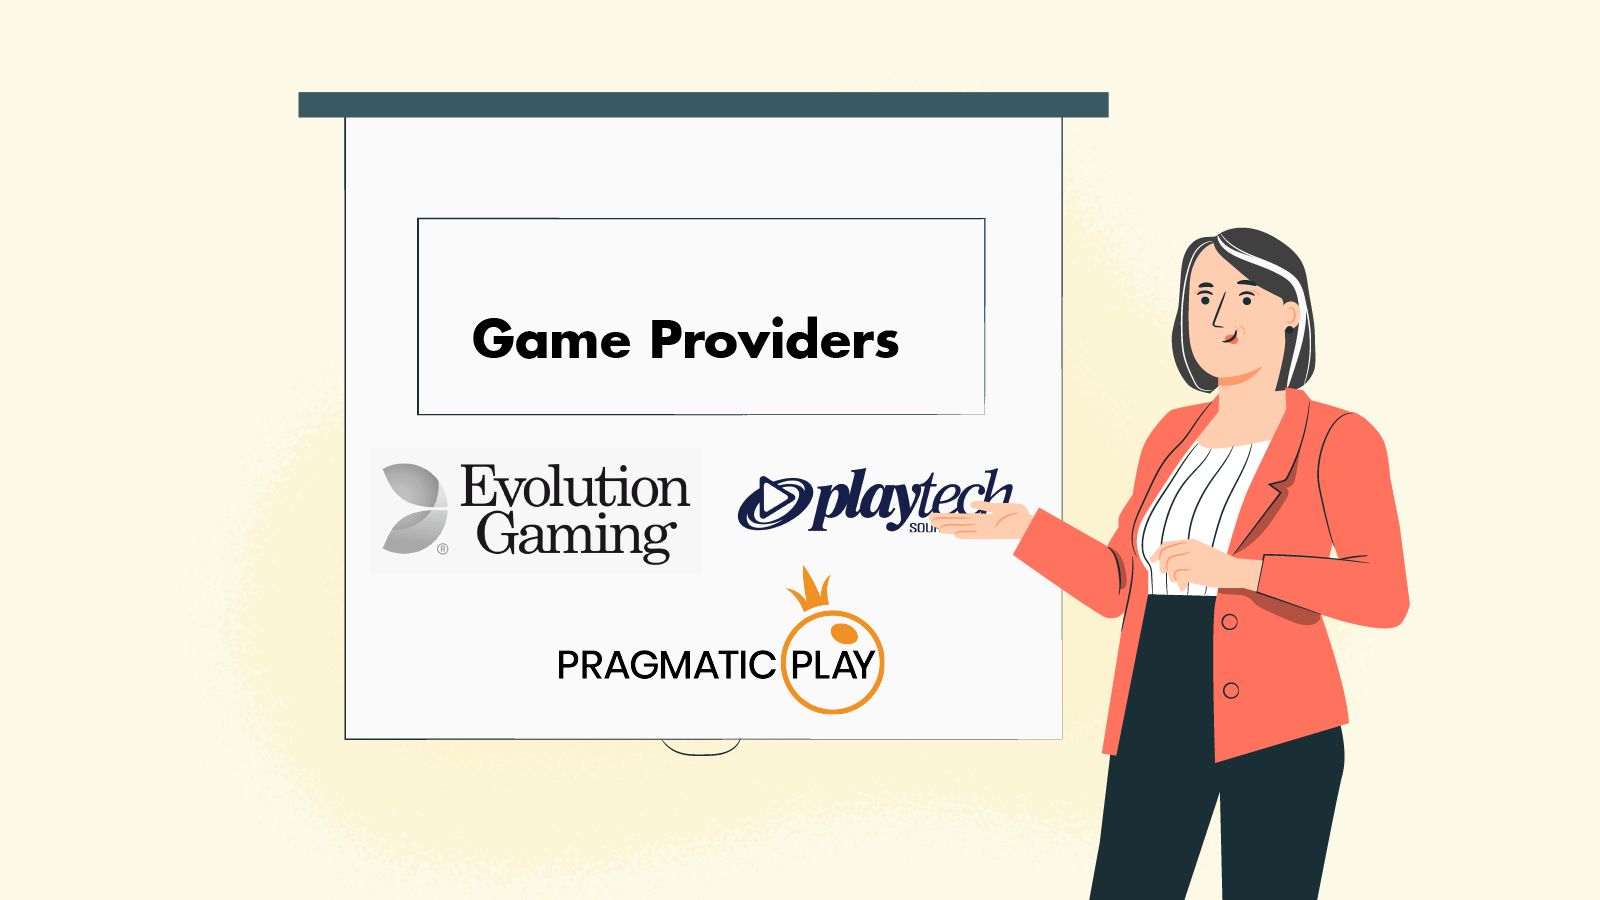 What live game providers we've seen